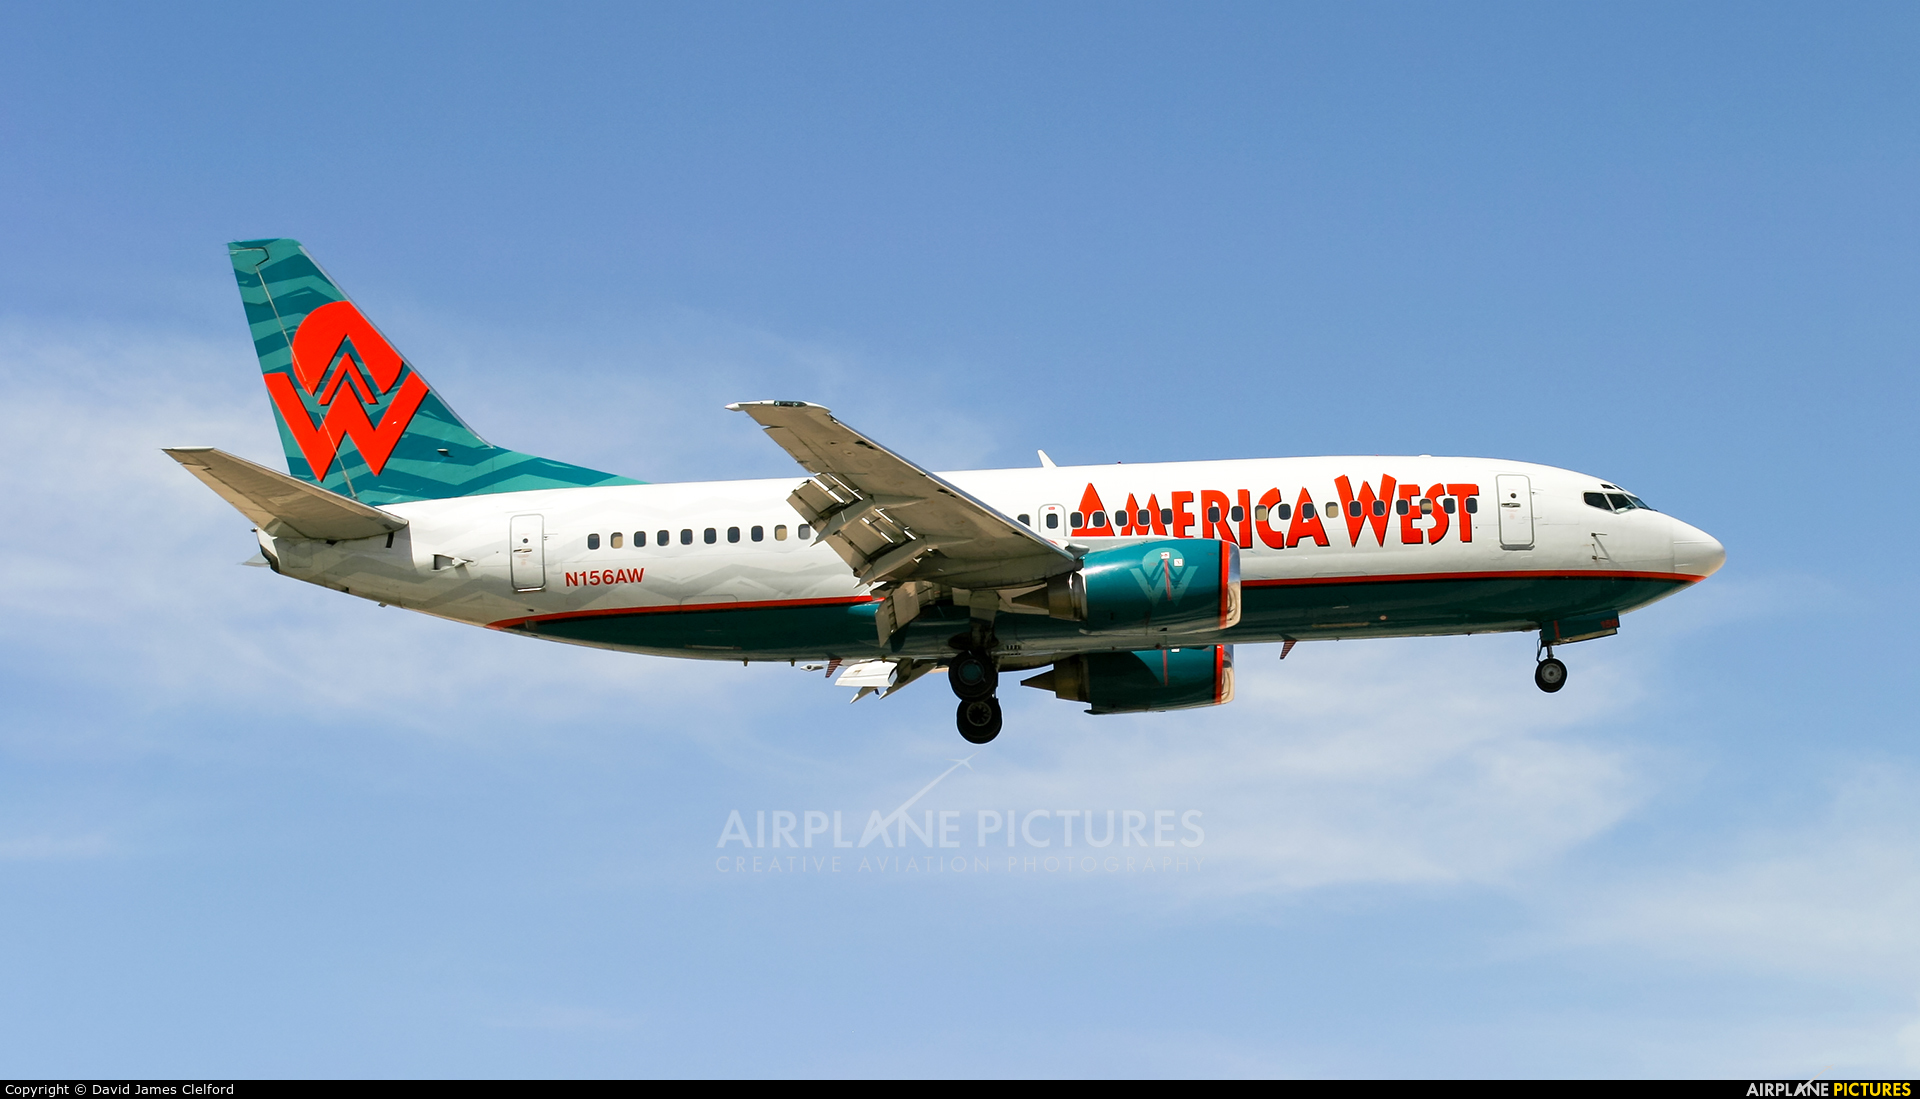 America West Airlines N156AW aircraft at Las Vegas - McCarran Intl